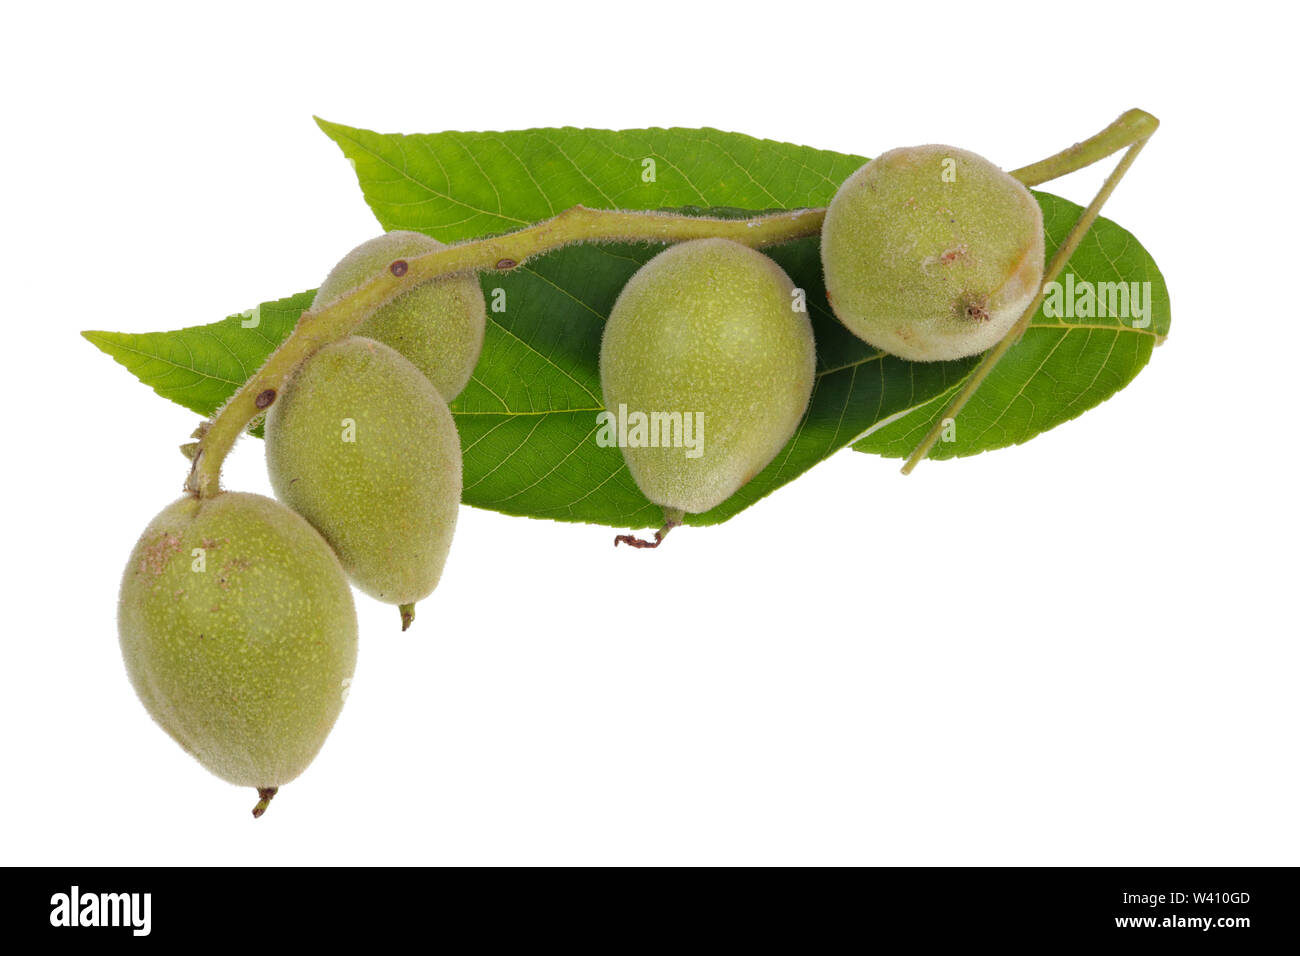 Five green unripe walnuts on one branch with leaves. Isolated on white studio macro - Stock Image